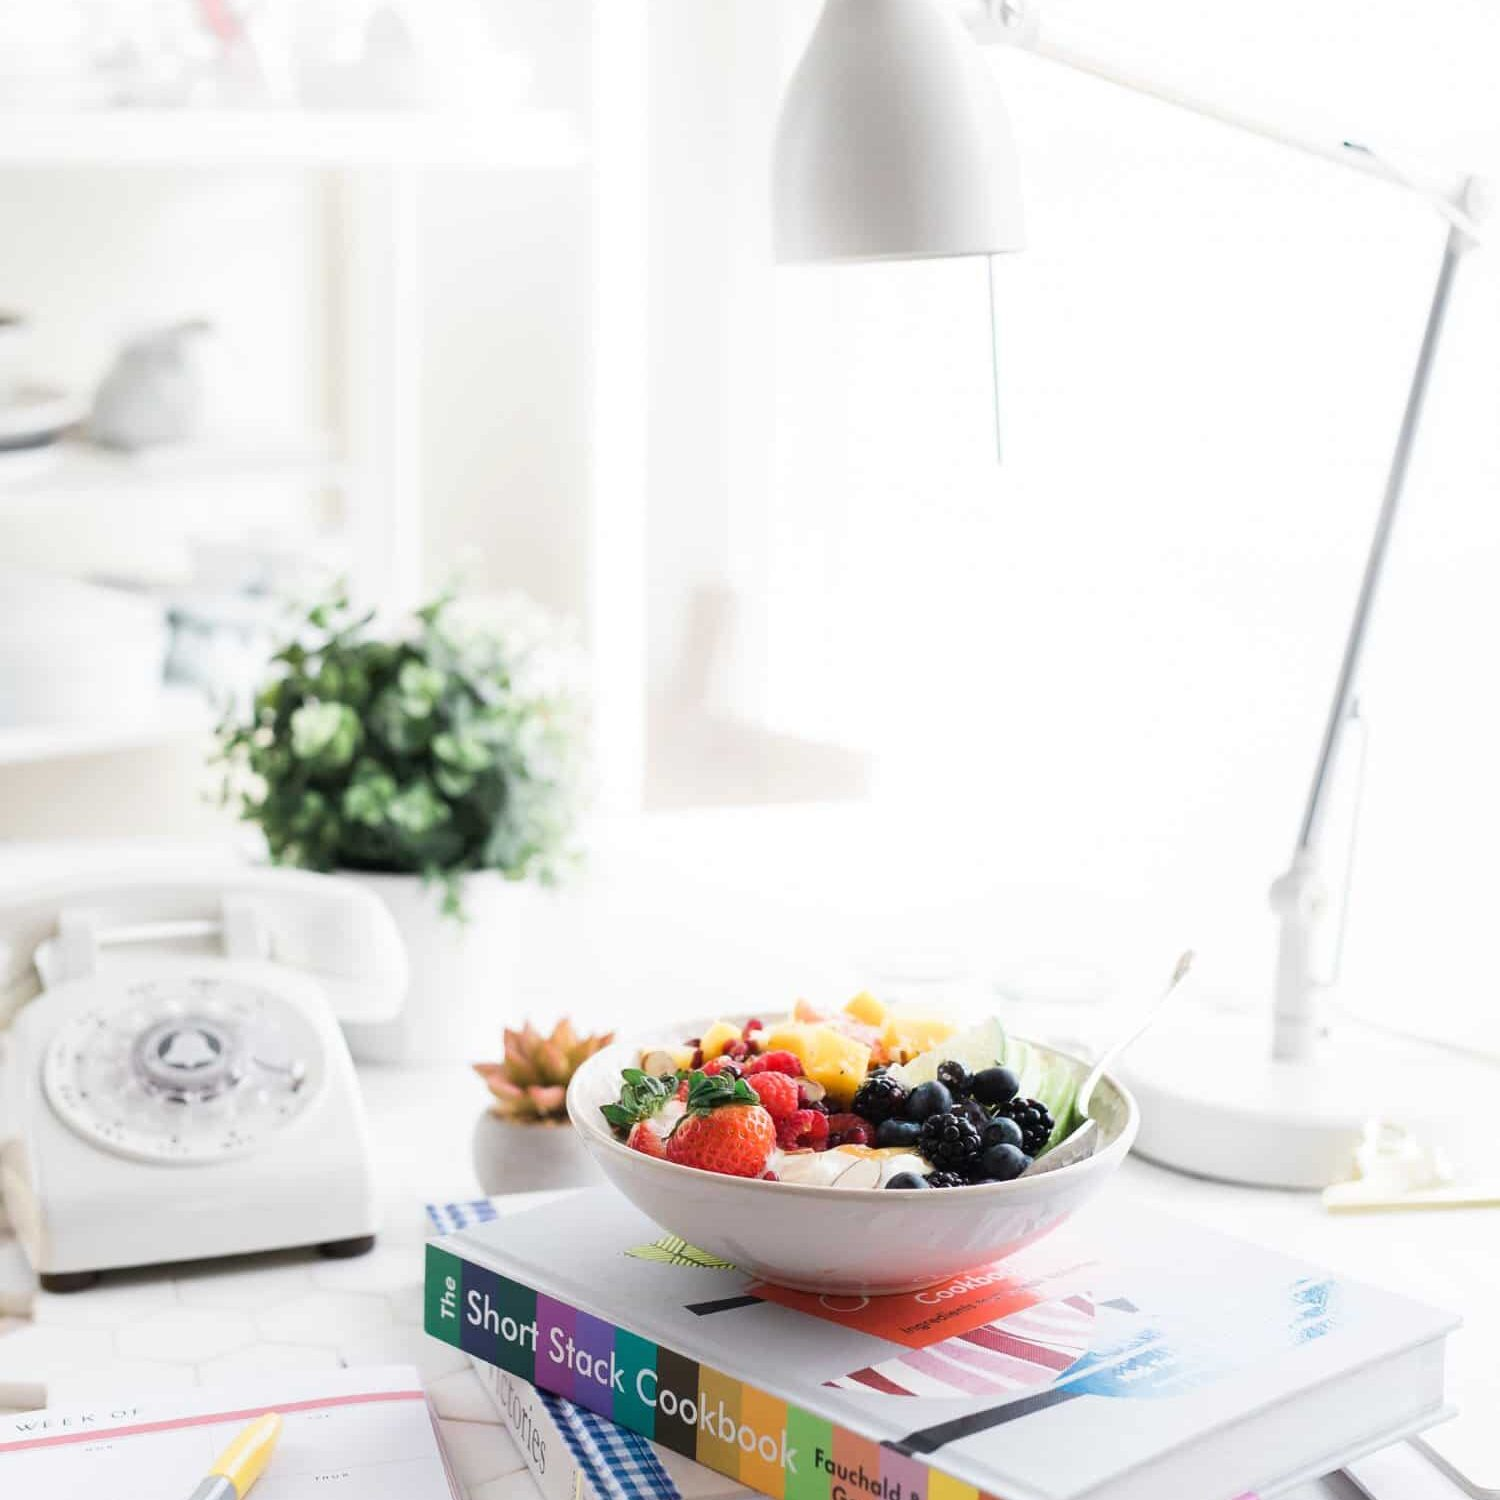 Meal Planning For Beginners - Great free printable meal planners